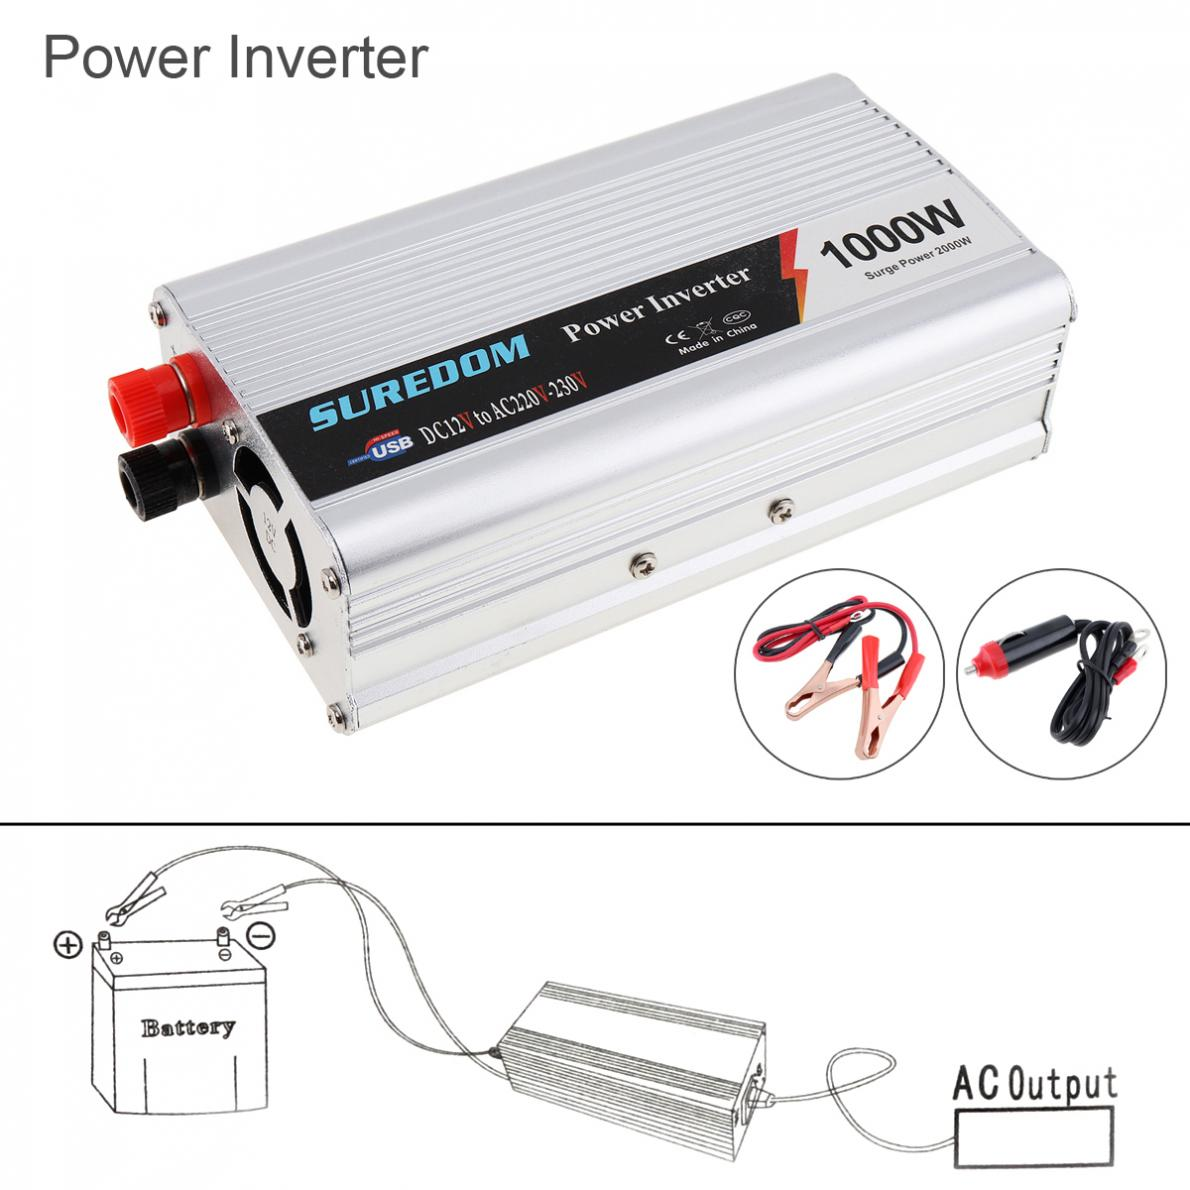 1000W DC 12V <font><b>24V</b></font> to AC <font><b>220V</b></font> 110V USB Portable Power <font><b>Inverter</b></font> Adapter Charger Universal Voltage Converter Surge Power <font><b>2000W</b></font> image